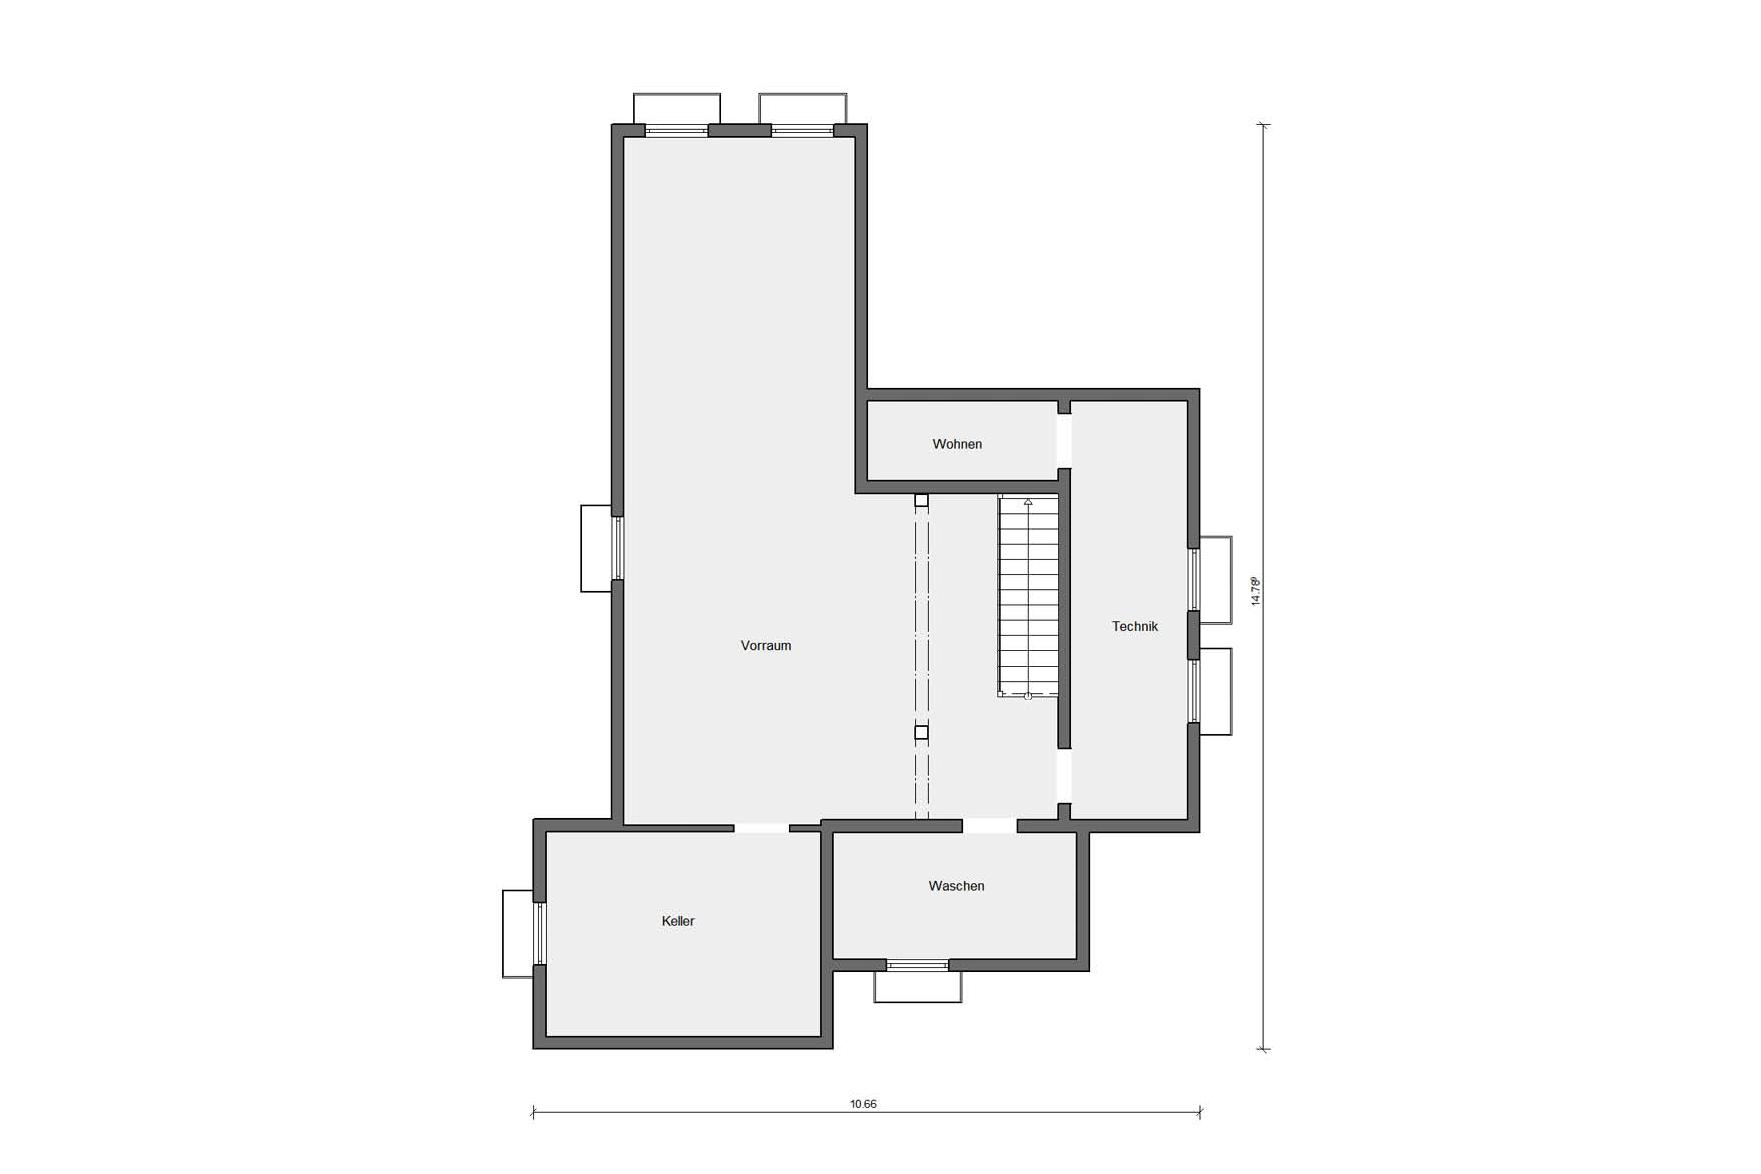 Ground floor basement Single-family house Bauhaus style with flat roof E 20-207.1